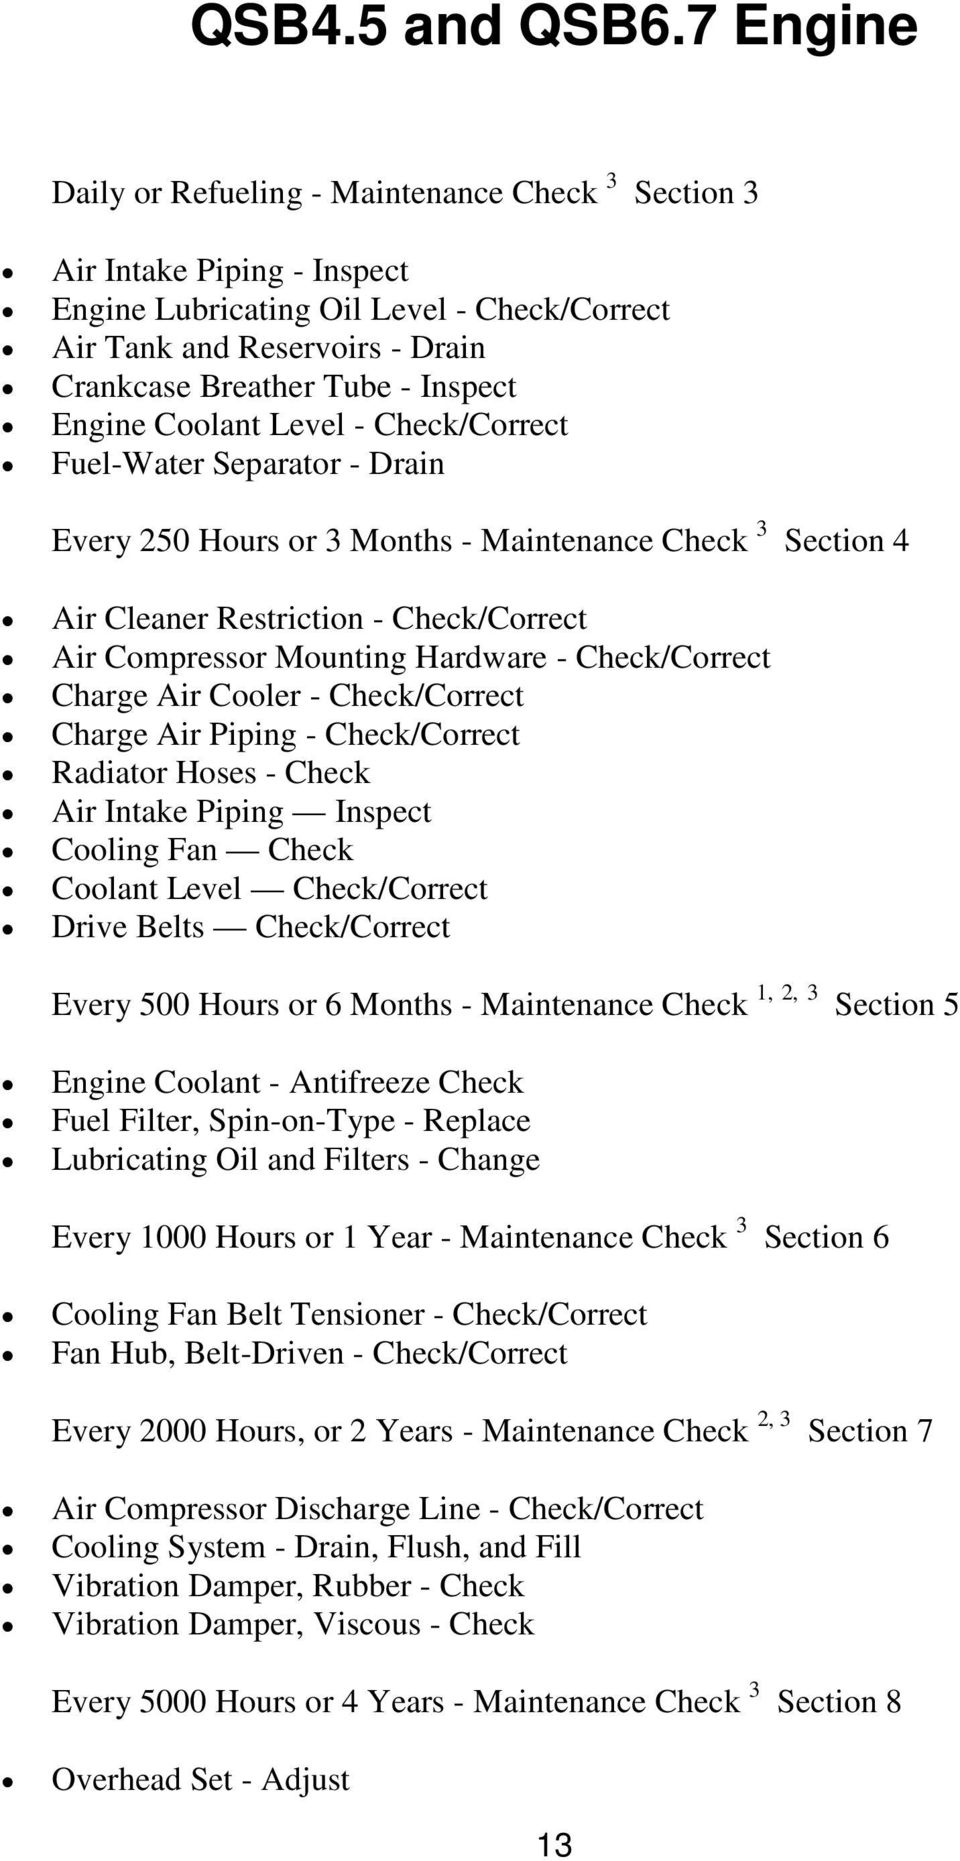 Recommended Maintenance Schedule Pdf Qsb6 7 Wiring Diagram Engine Coolant Level Check Correct Fuel Water Separator Drain Every 250 Hours